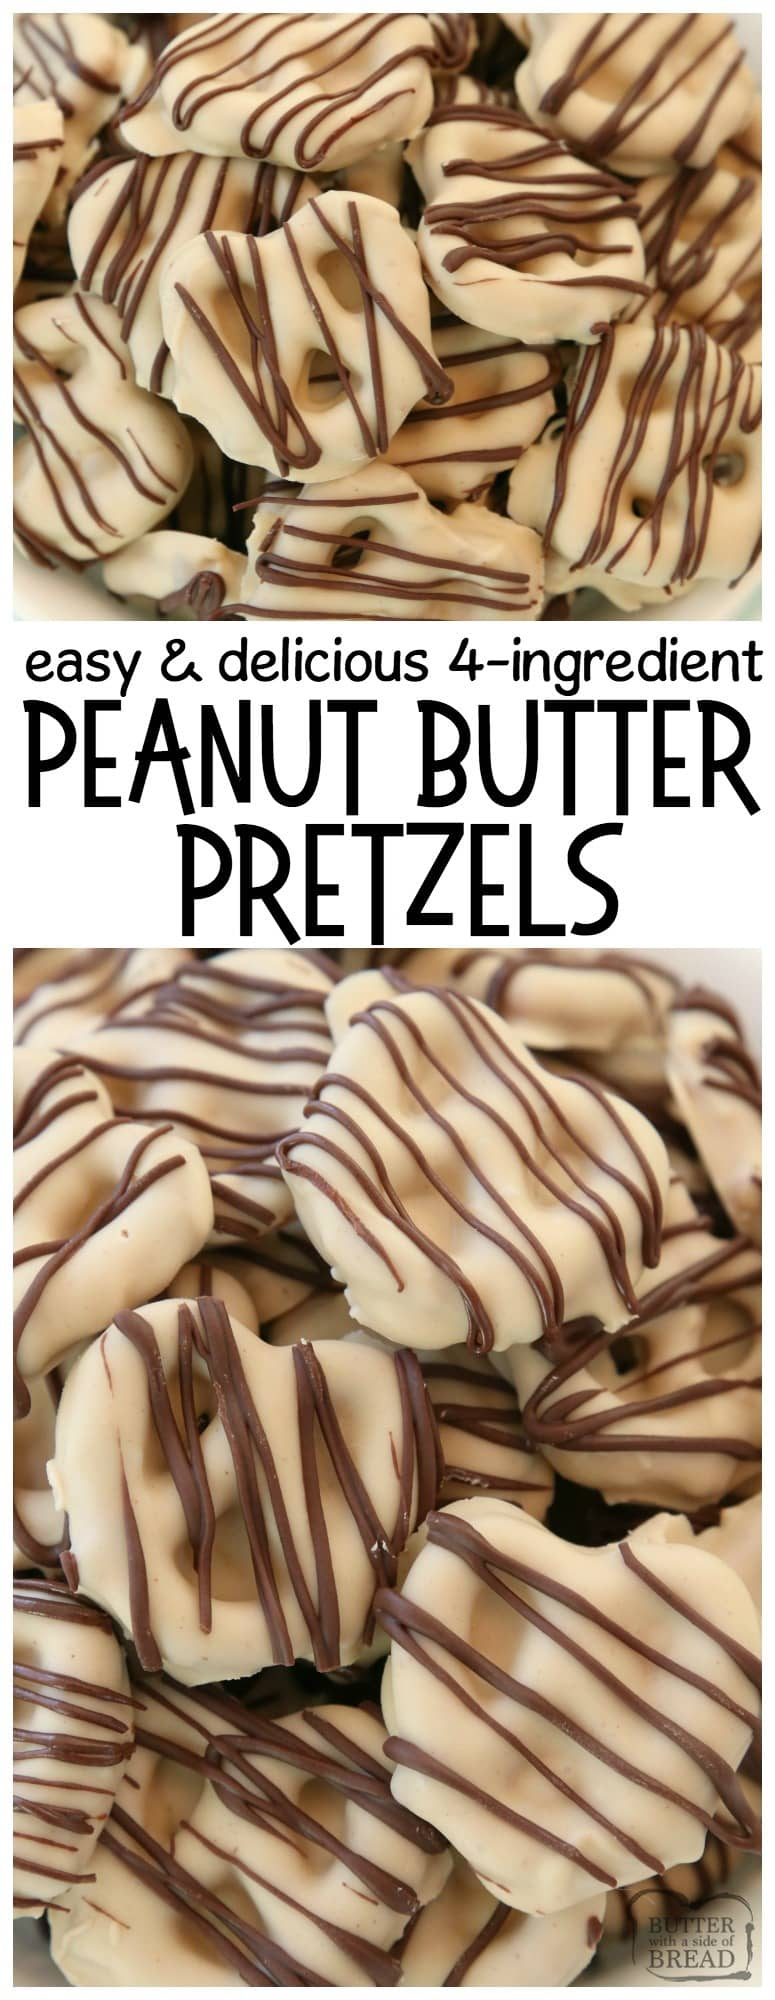 Peanut Butter Pretzels are made with 4 simple ingredients and they're completely amazing! Easy treats made with peanut butter, pretzels, and chocolate & perfect for anytime! Delicious #peanutbutter #recipe for #snack or #dessert with few ingredients and minimal work! SO simple! Butter With A Side of Bread #pretzels #chocolate